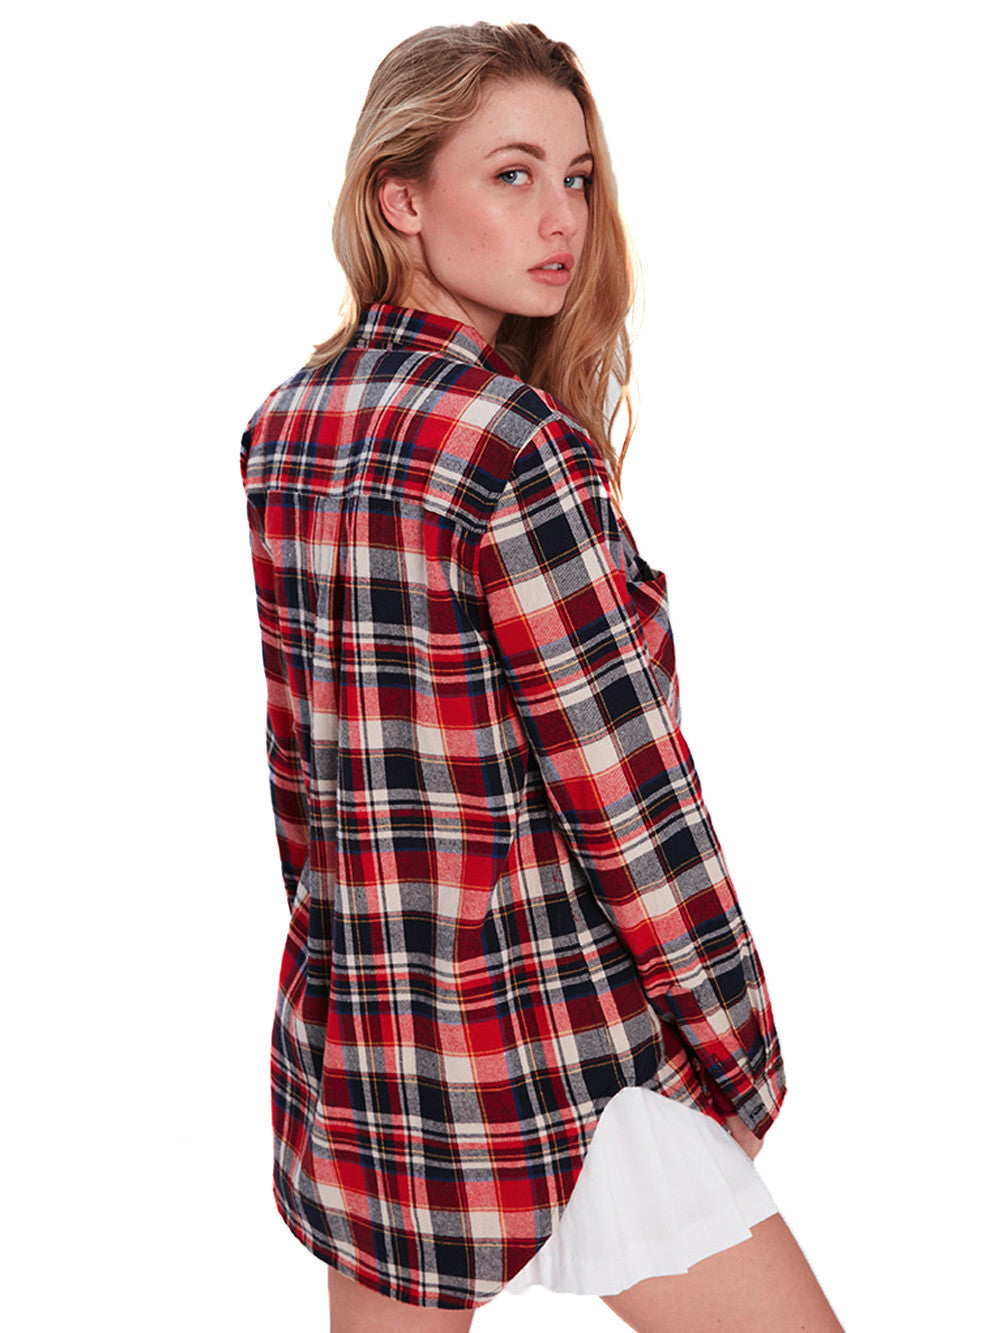 8c832c8822 Reckless Girls Womens - Tops - Shirts / Blouses Lena Button Up